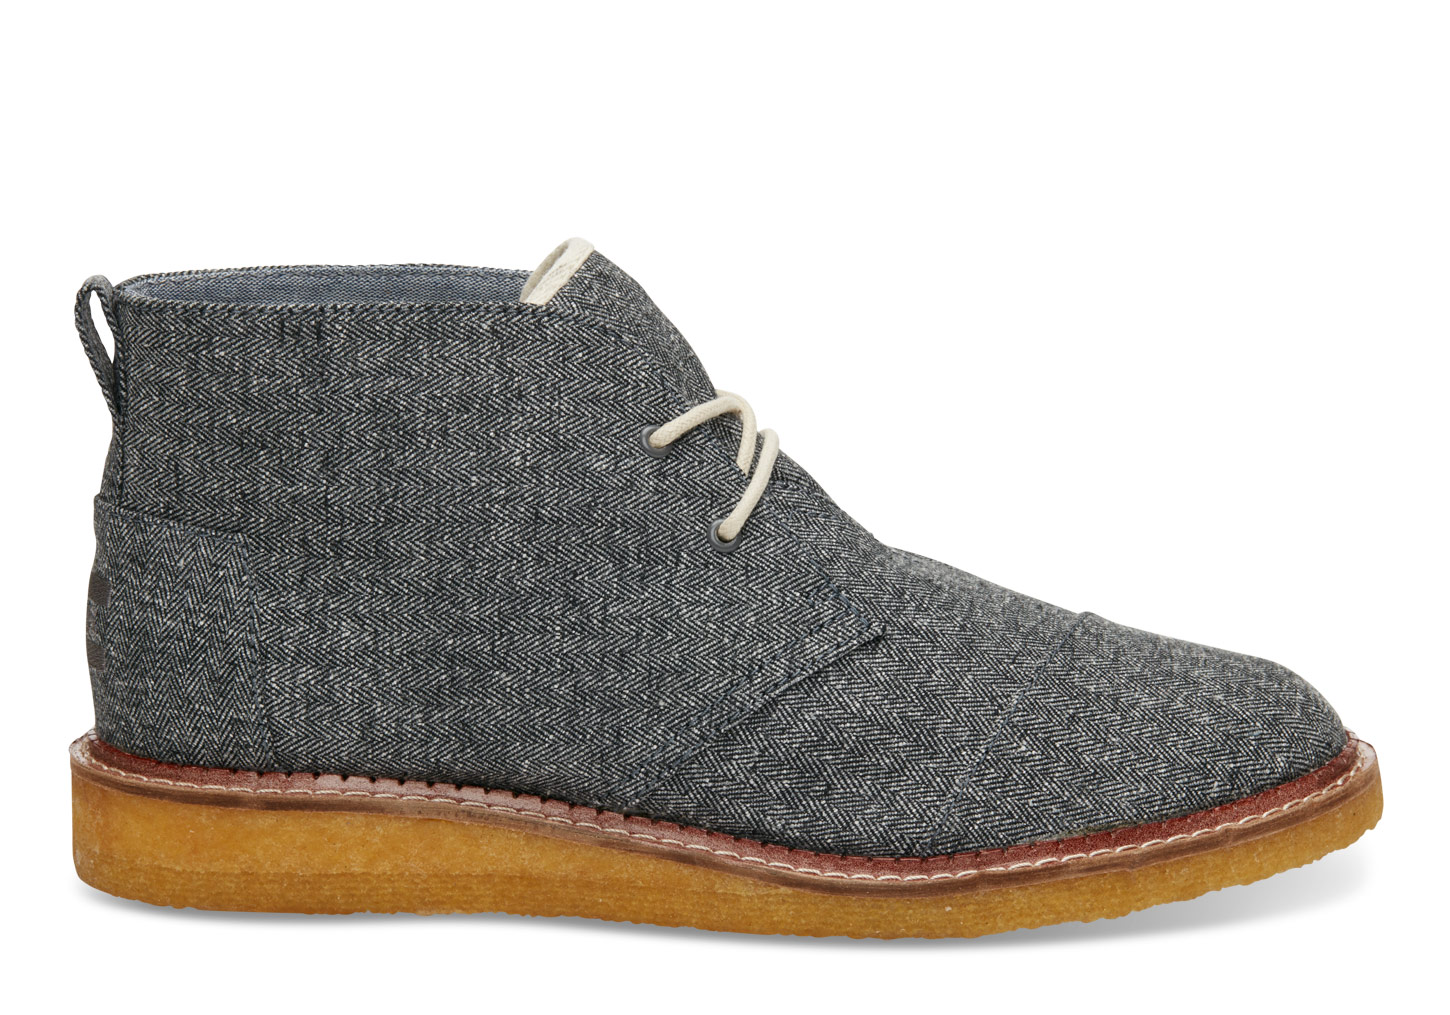 Mateo Chukka Boots by Toms x The Hill-Side